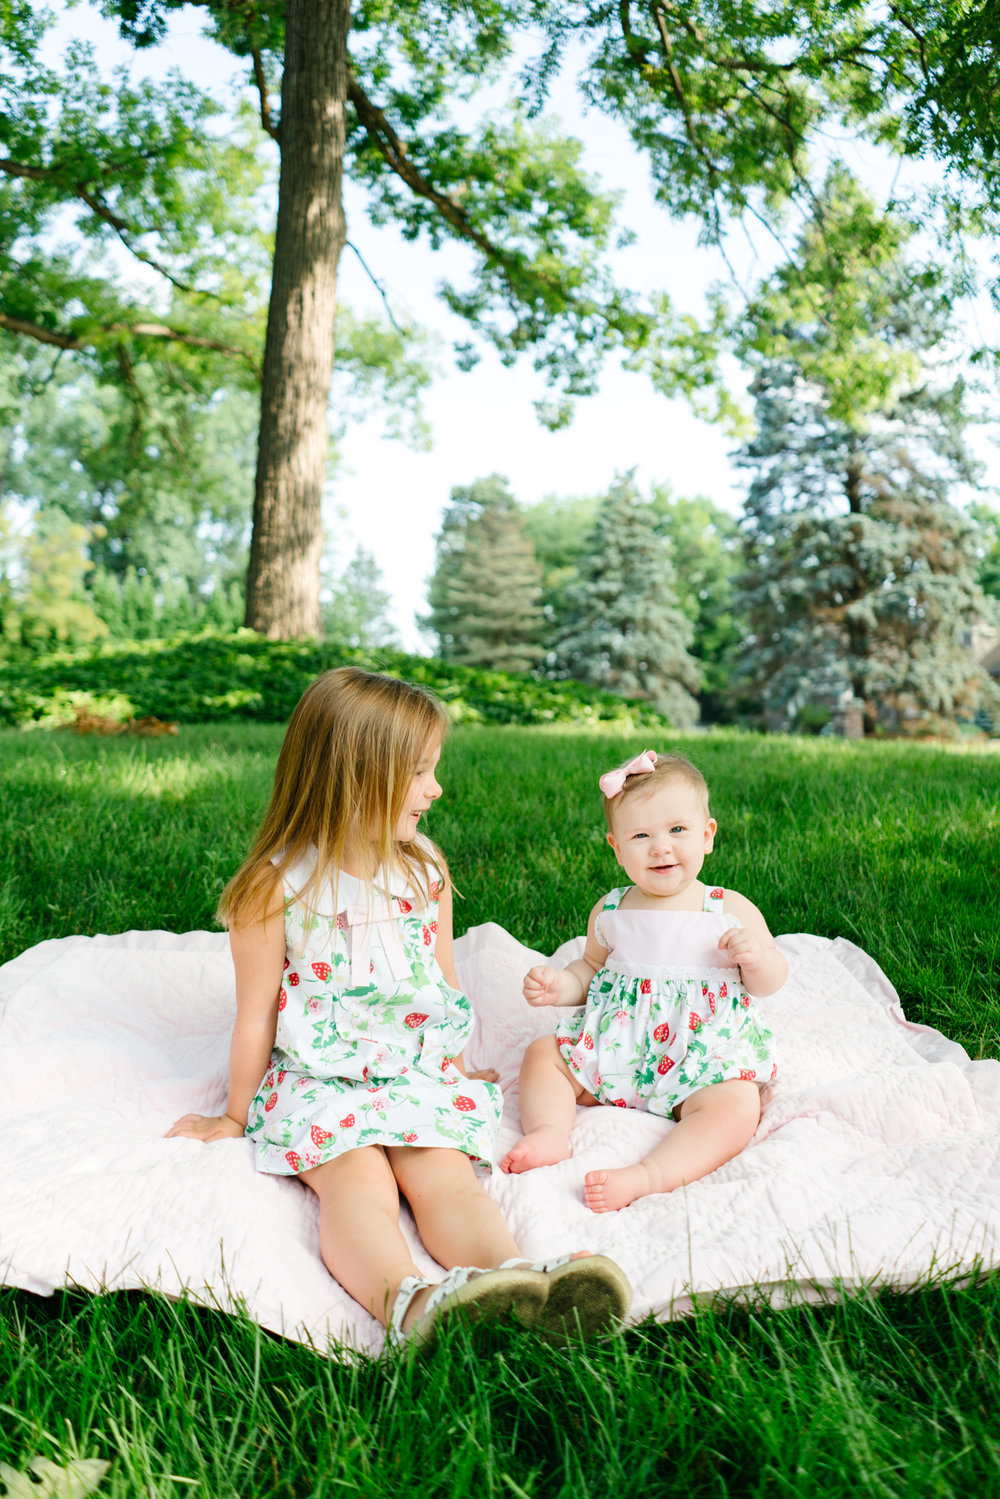 Summer Children's Photos in Seattle, Washington